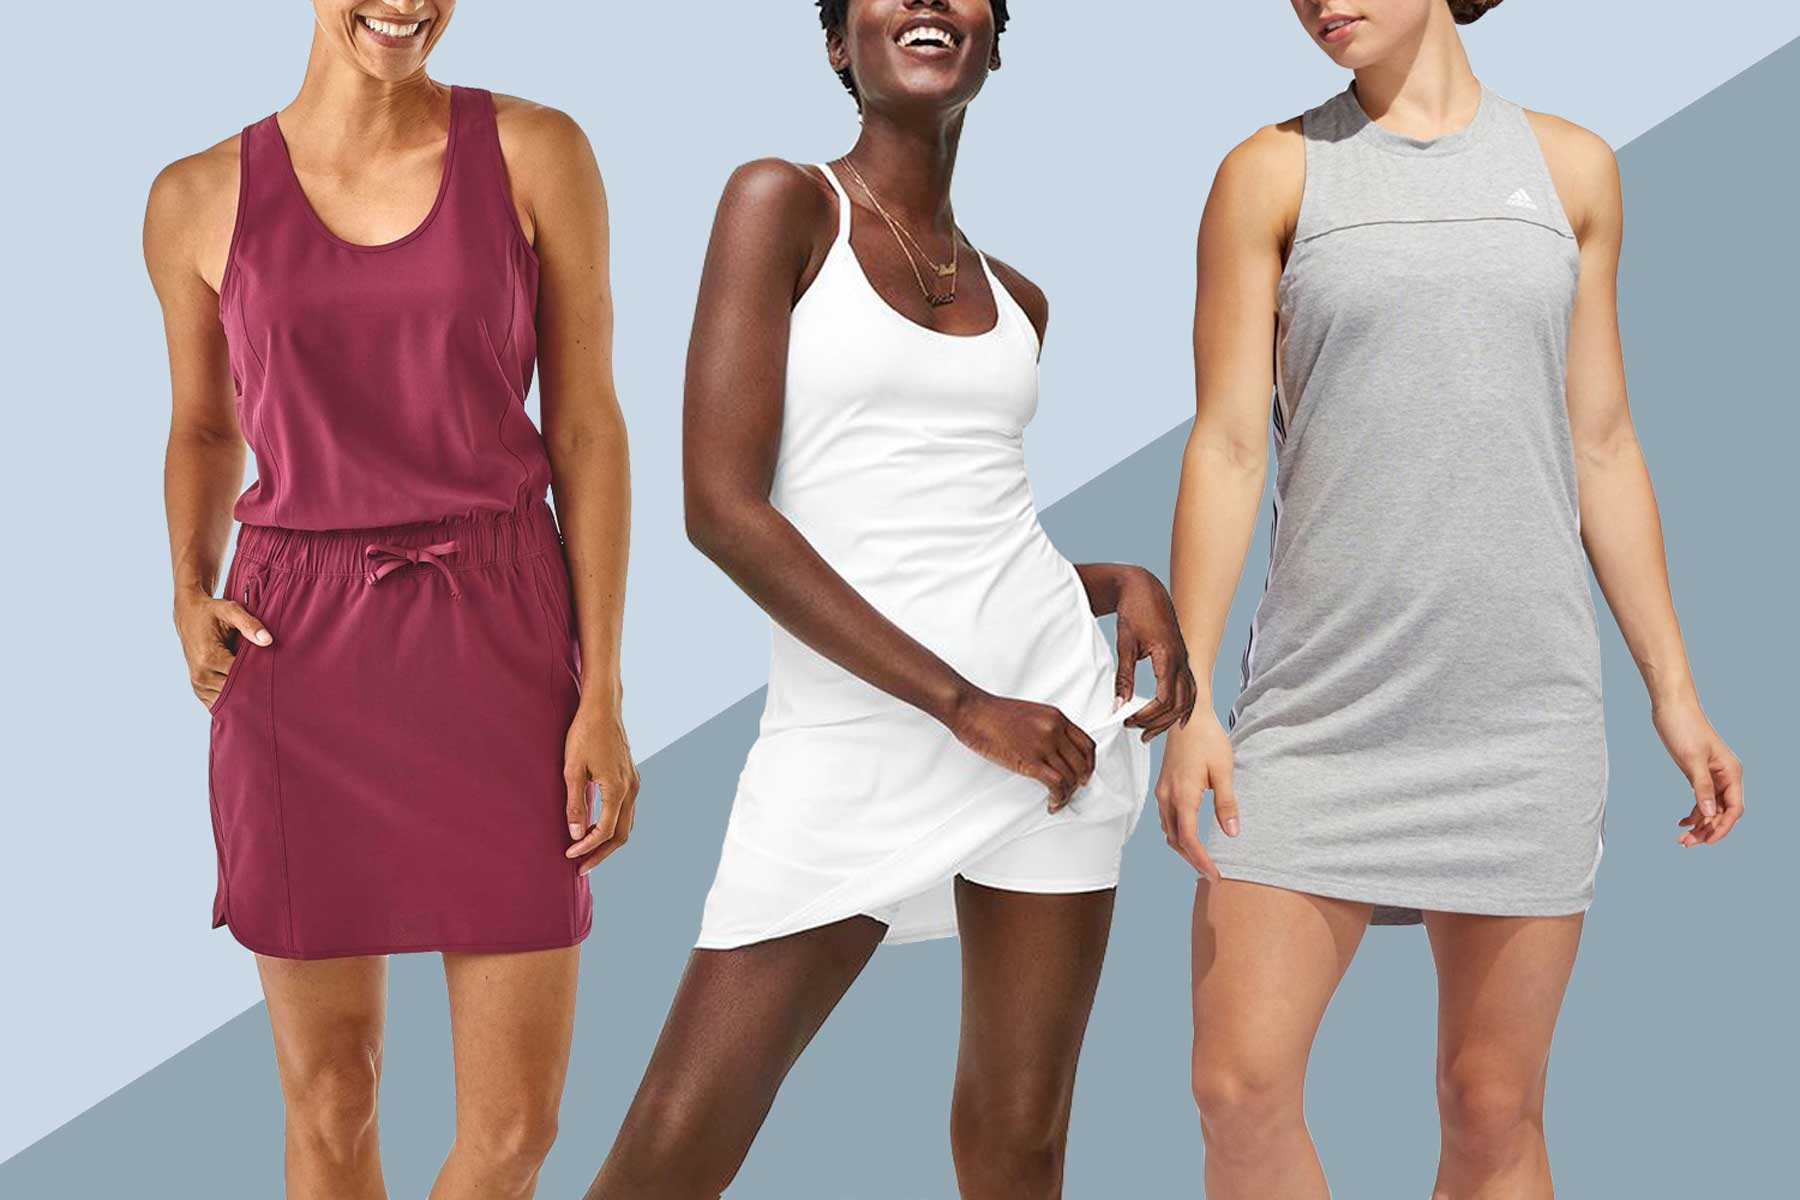 Exercise dresses from Outdoor Voices and Dick's Sporting Goods